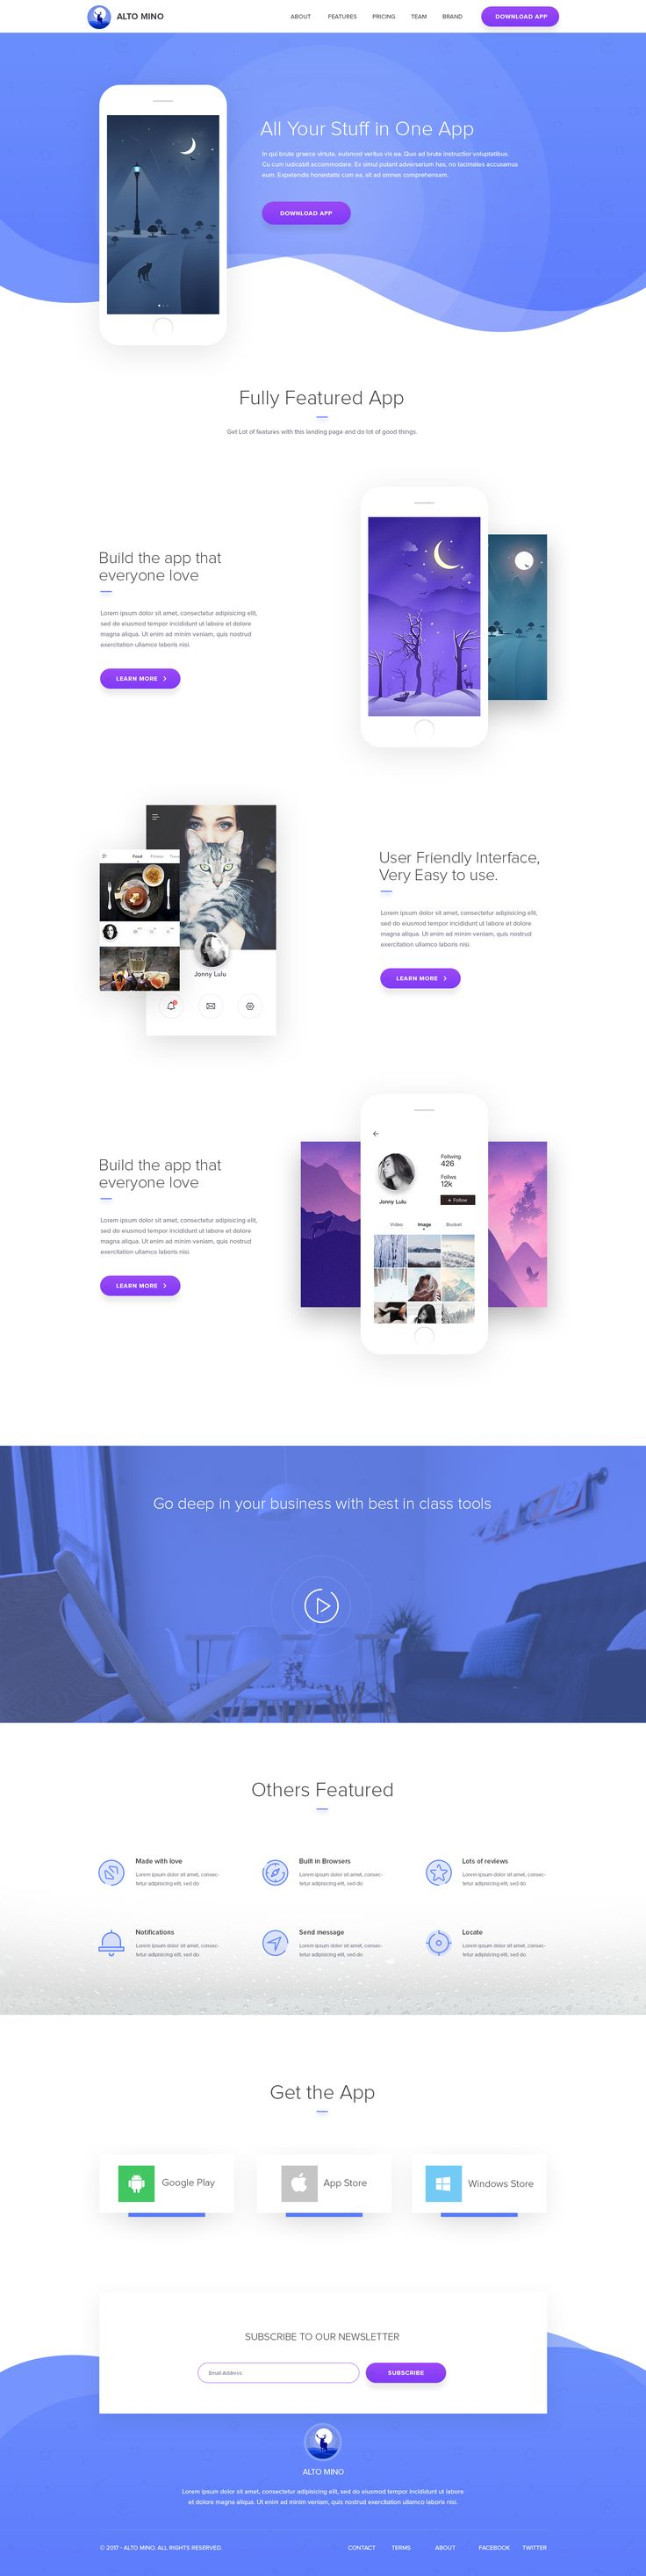 3112 best web design inspiration images on pinterest for Web page architecture